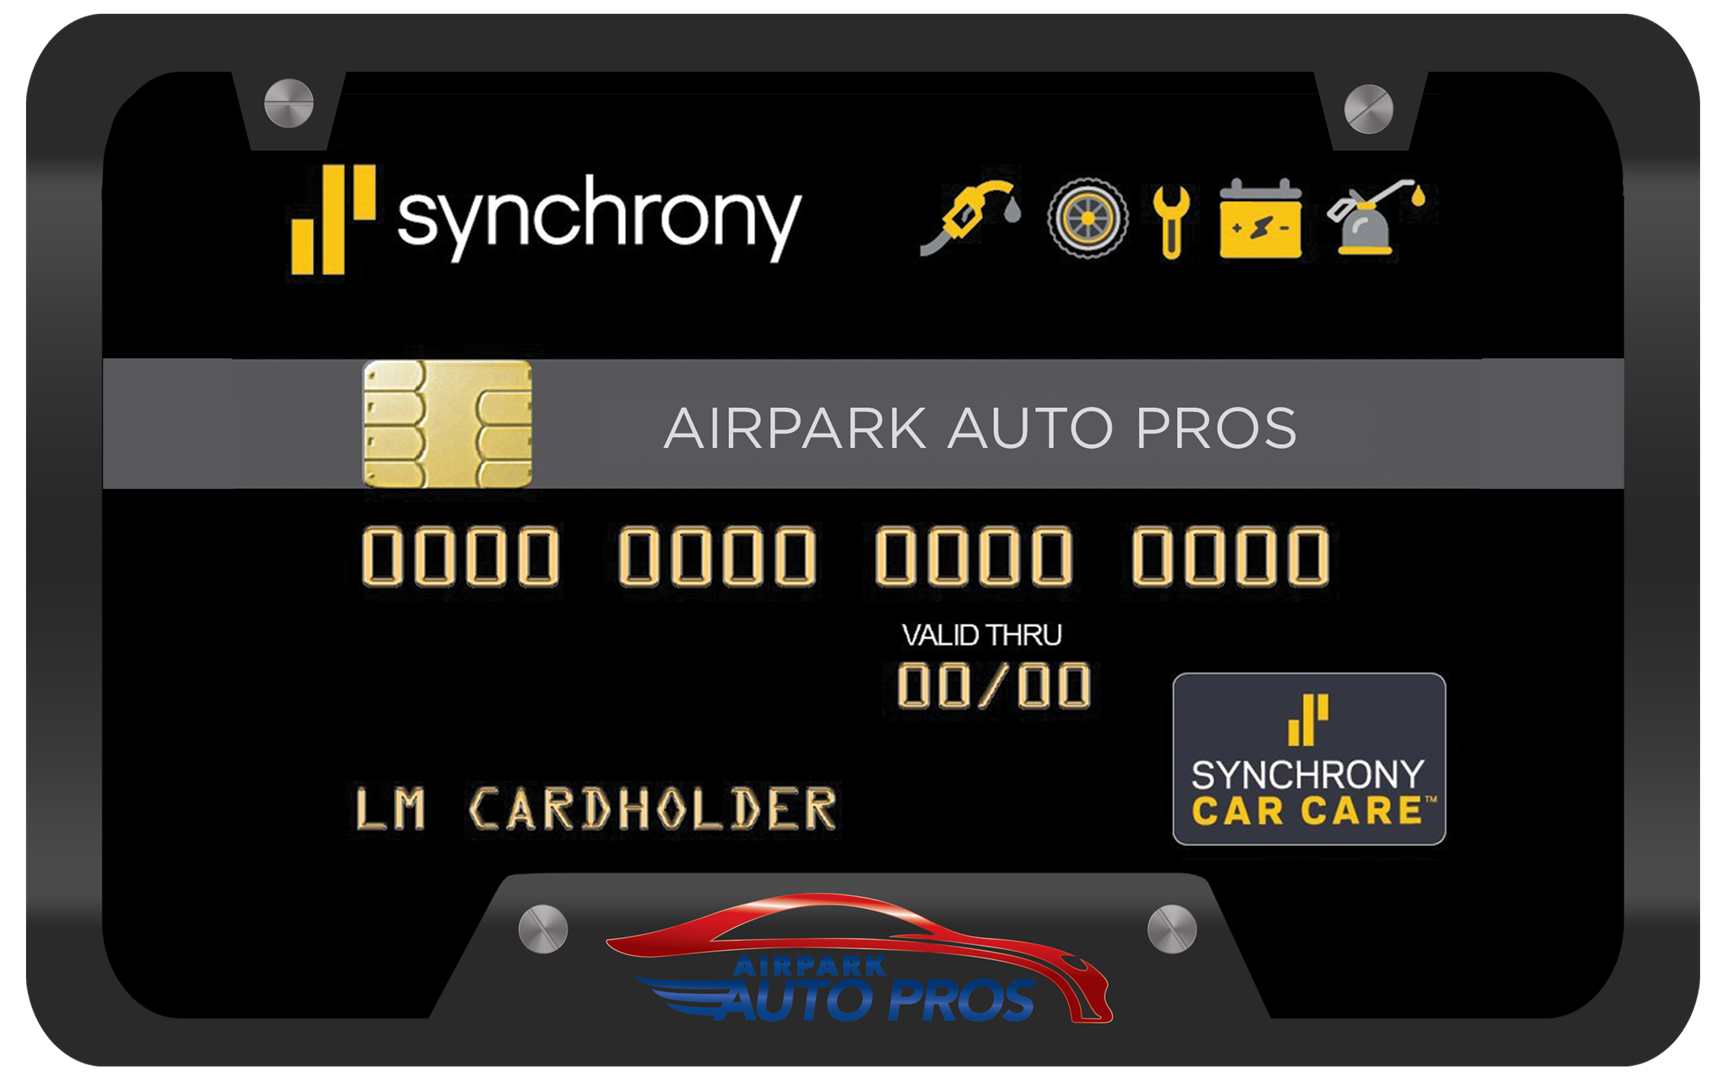 Synchrony Financing | Airpark Auto Pros